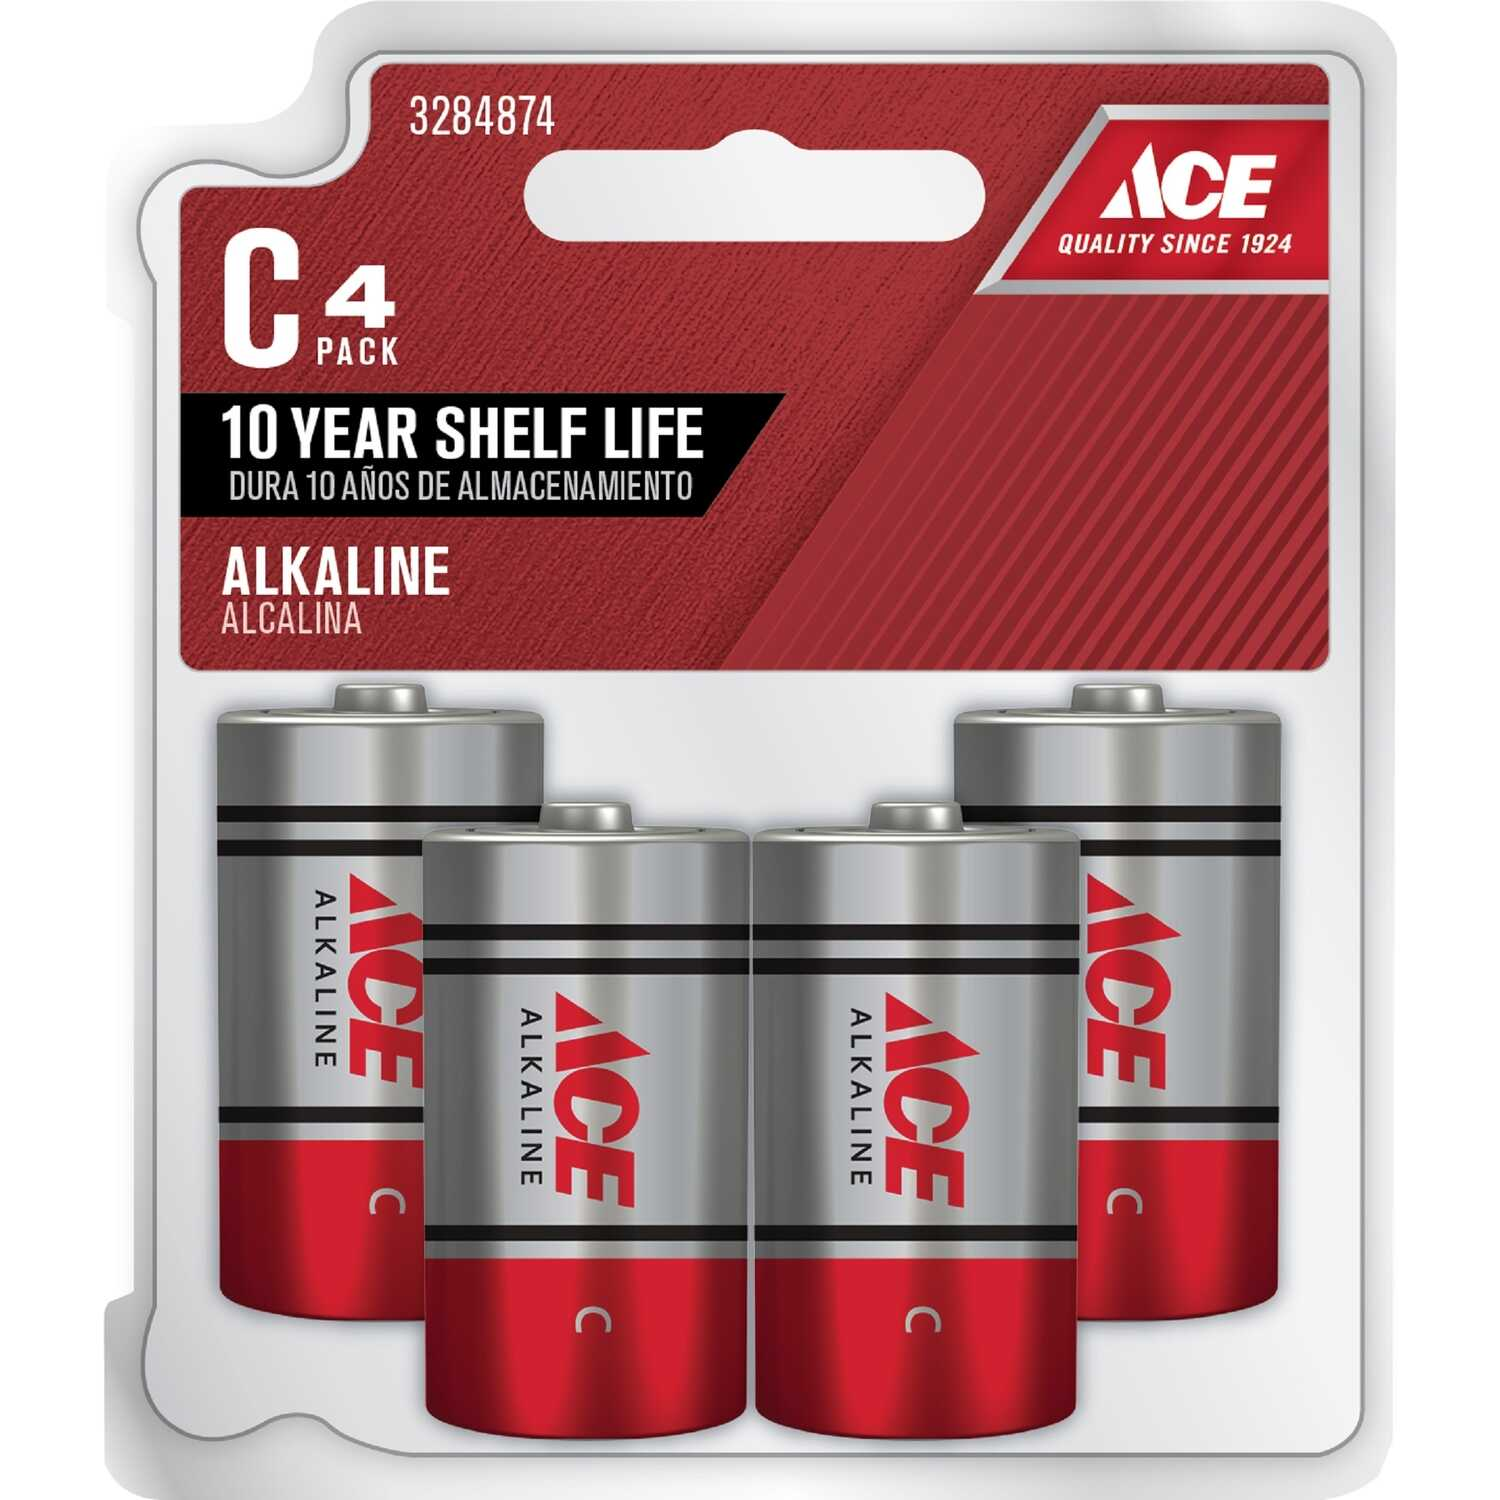 Ace  C  Alkaline  Batteries  4 pk Carded  1.5 volts